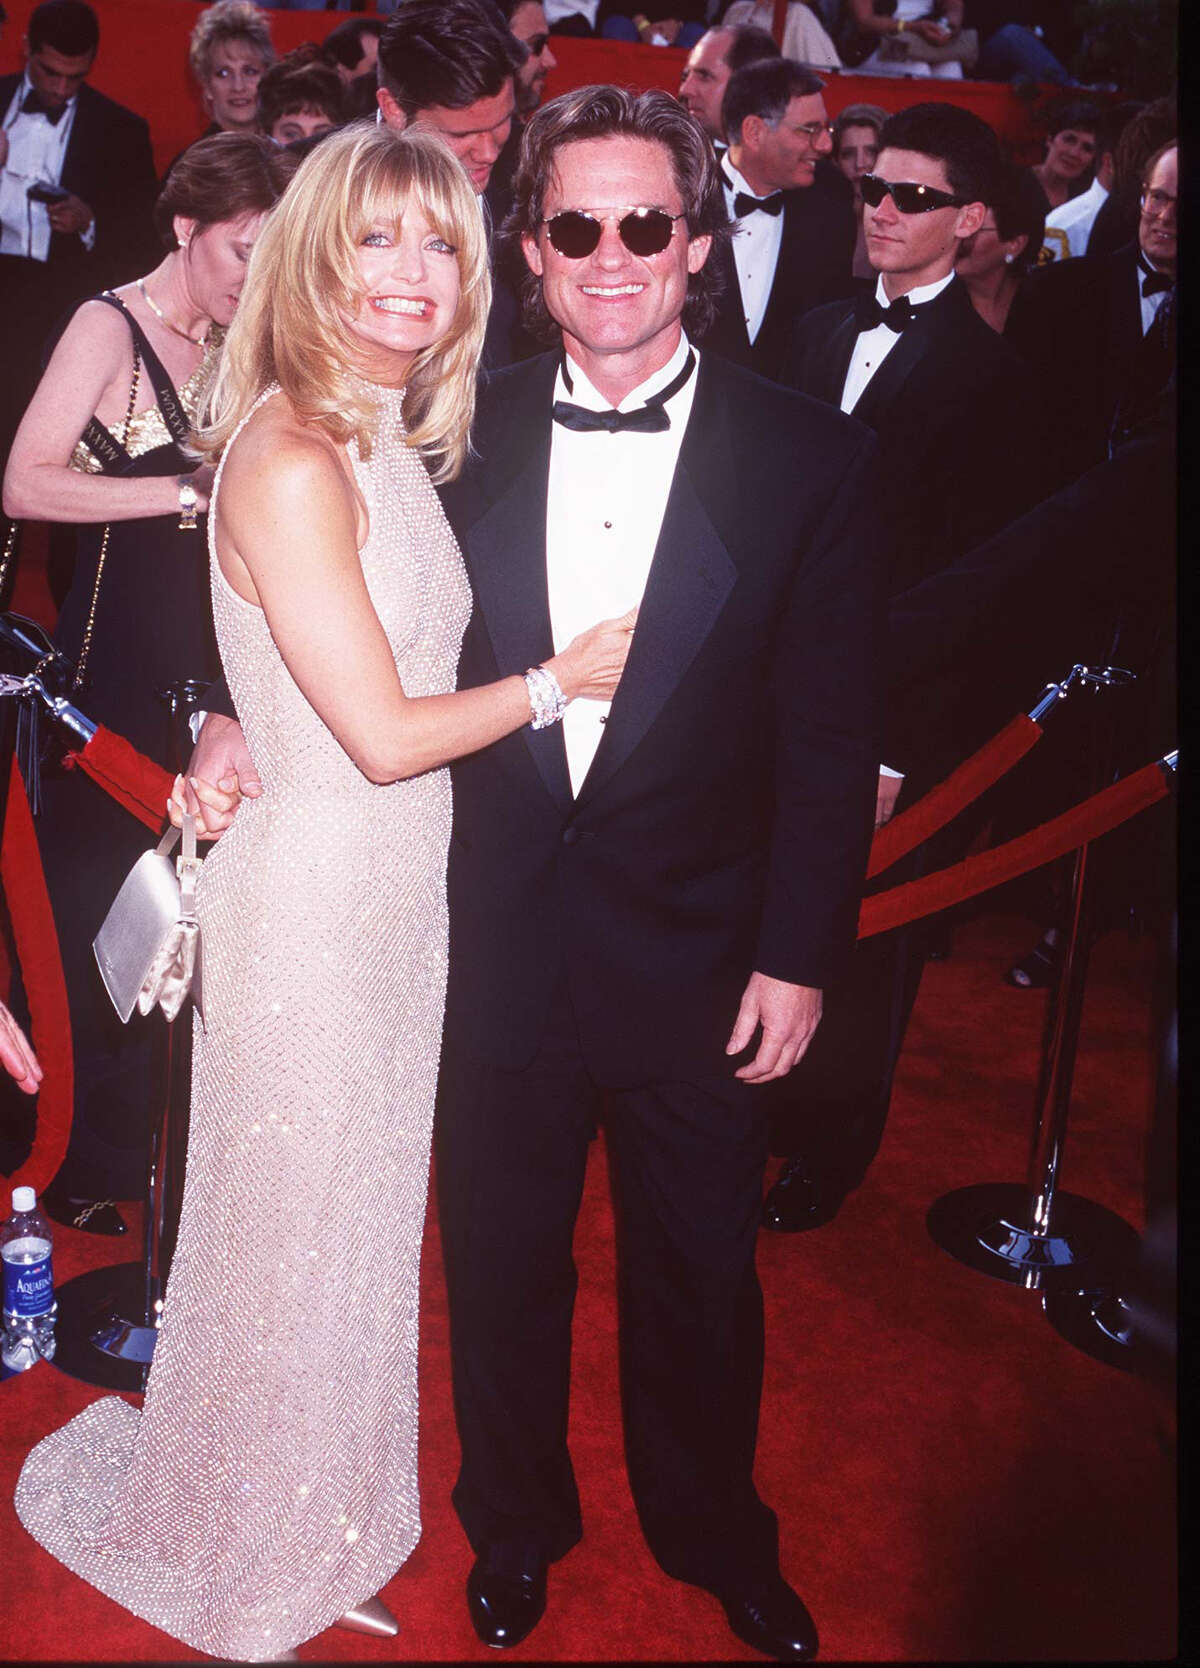 Goldie Hawn and Kurt Russell during The 69th Annual Academy Awards - Arrivals at Shrine Auditorium in Los Angeles, California, United States. (Photo by Jeffrey Mayer/WireImage)